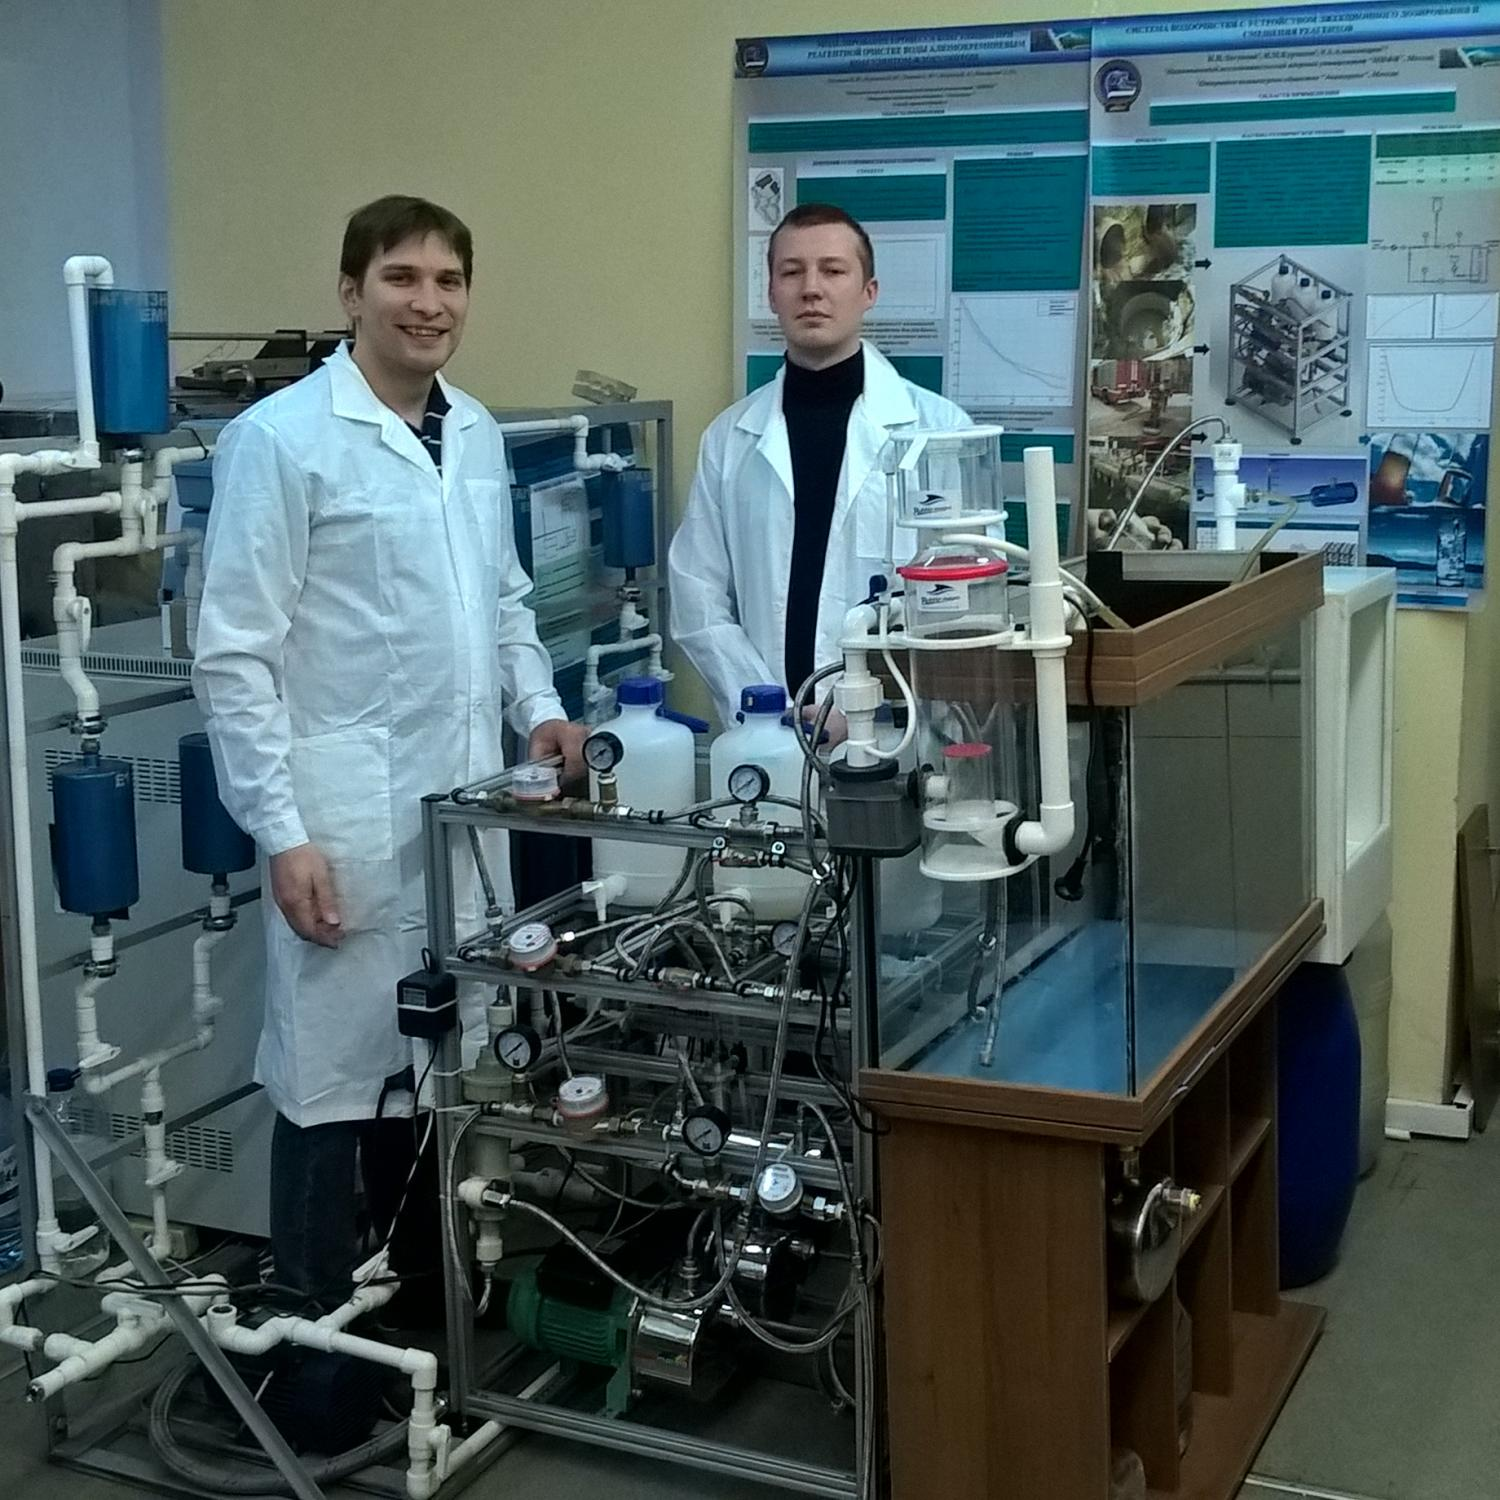 Researchers develop hybrid nuclear desalination technique with